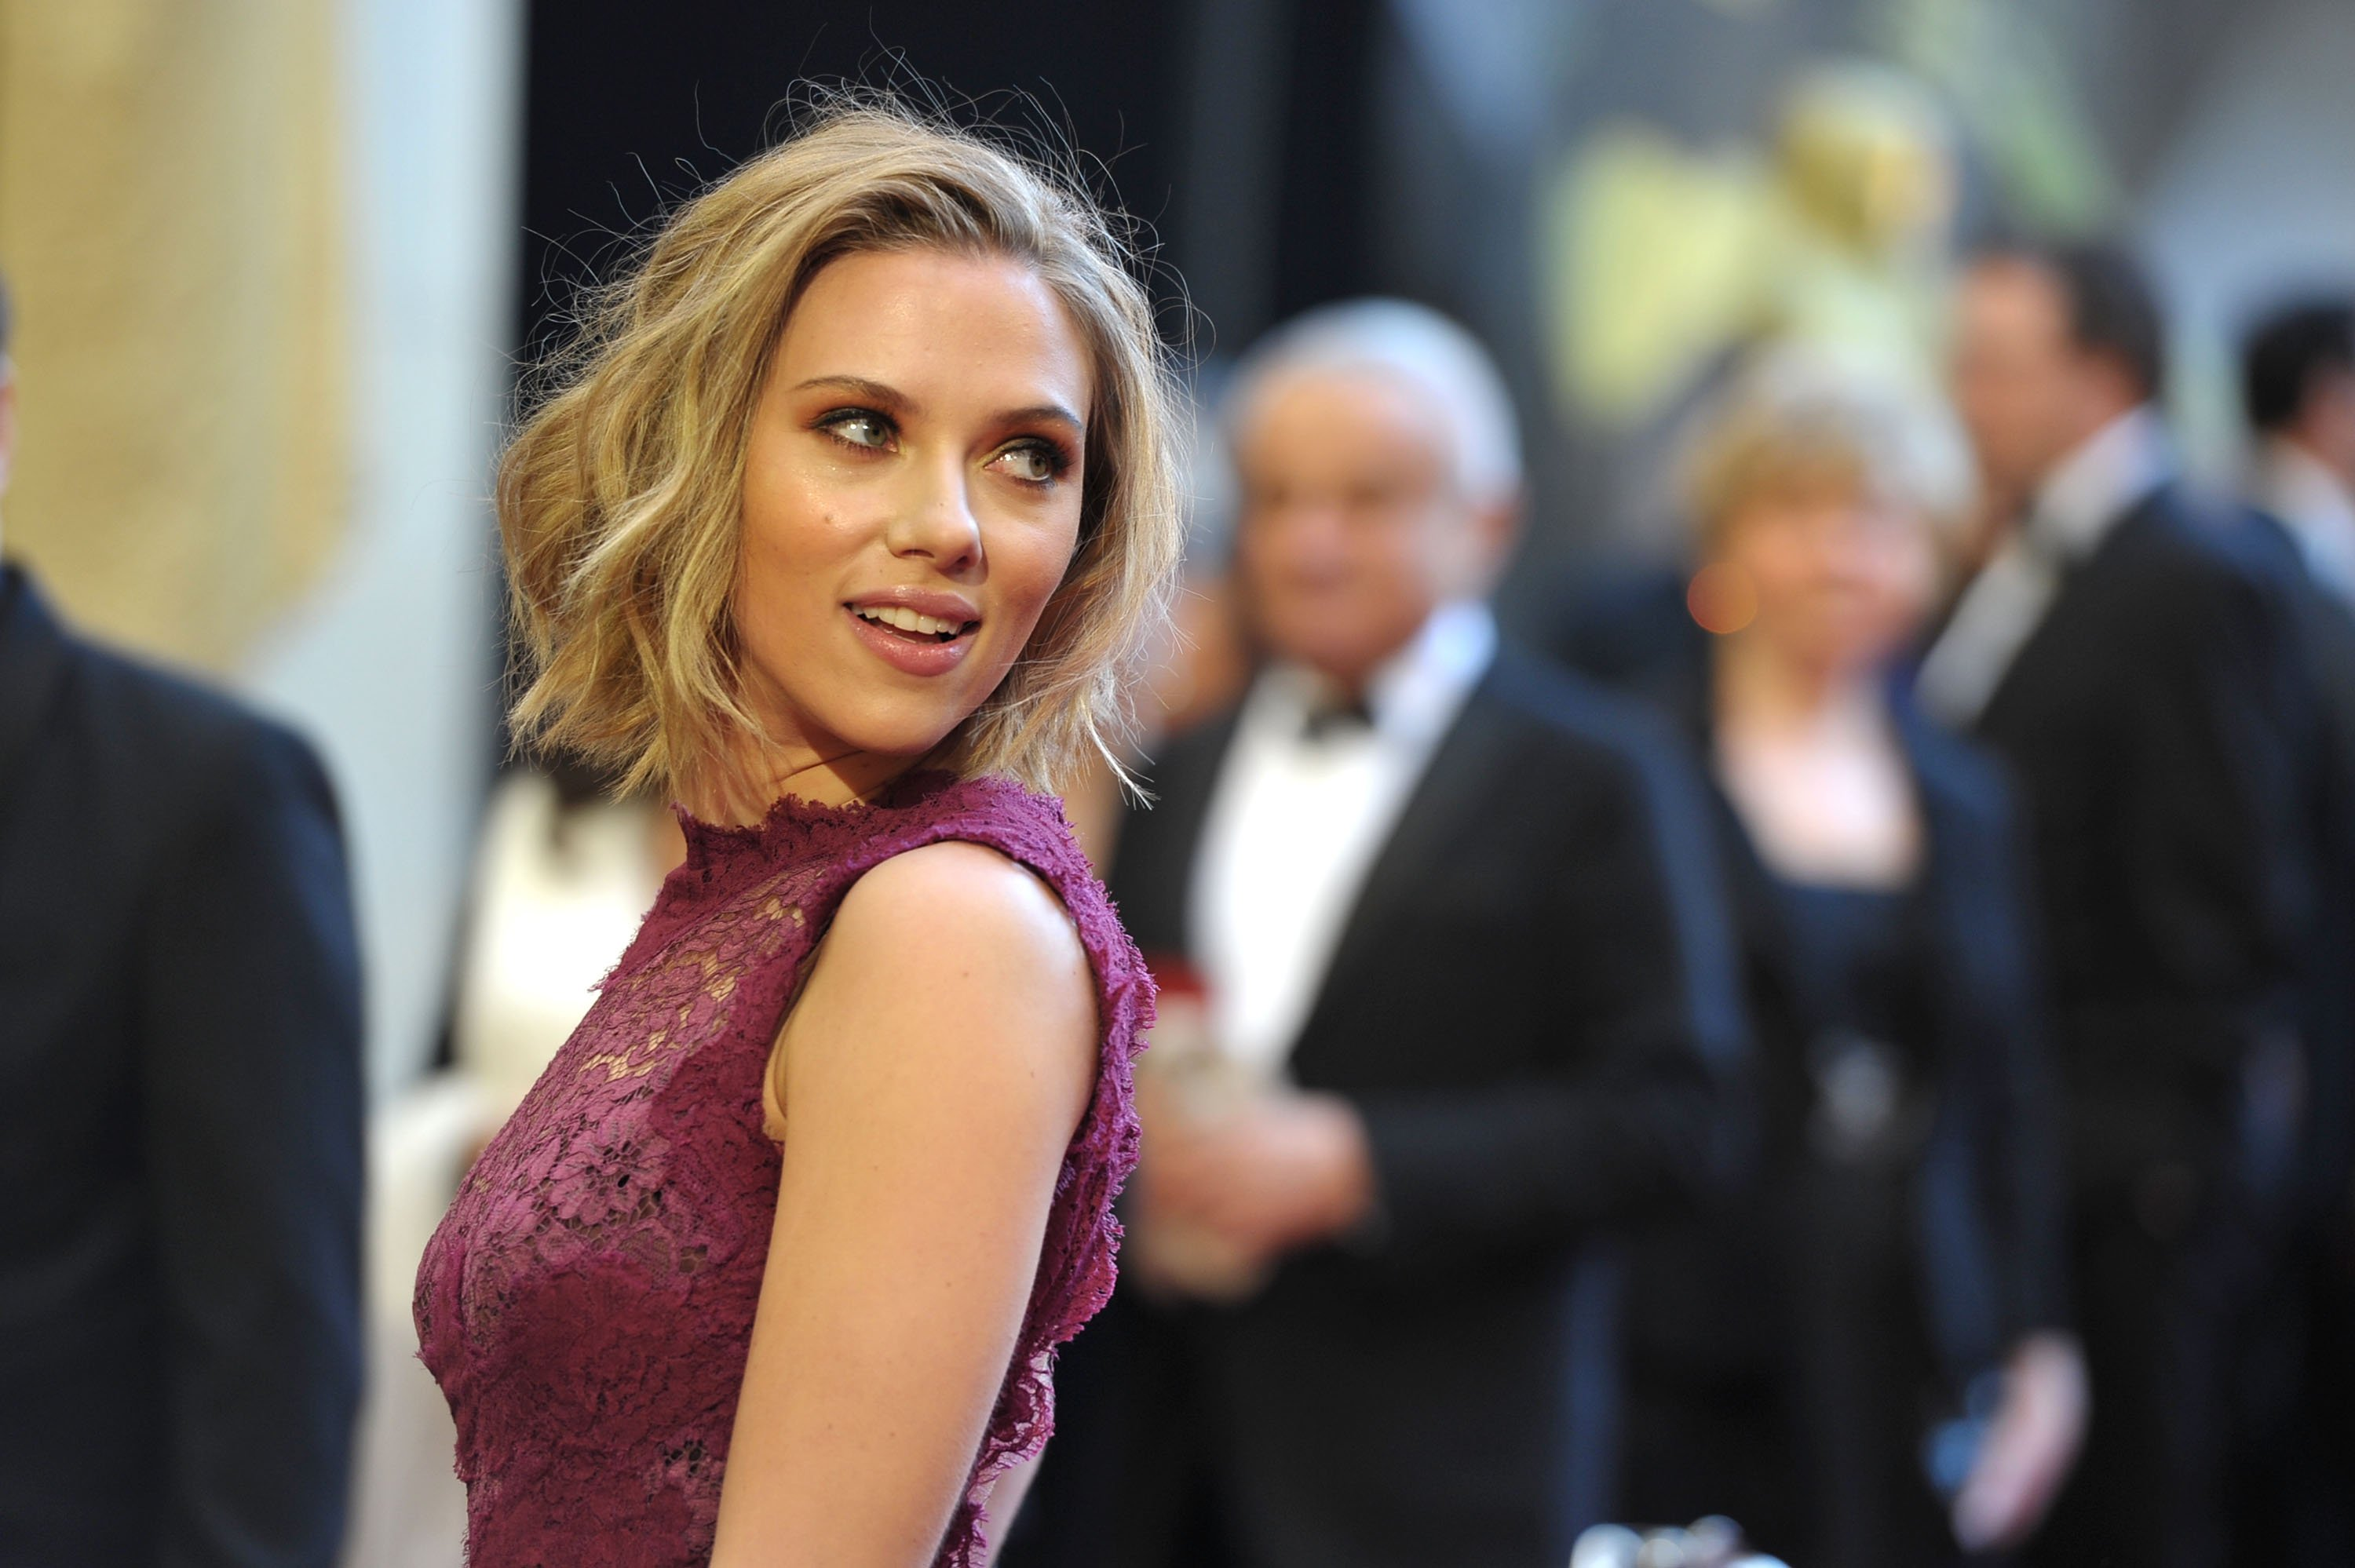 Scarlett Johansson arrives at the 83rd Annual Academy Awards held at the Kodak Theatre on February 27, 2011 | Photo: GettyImages